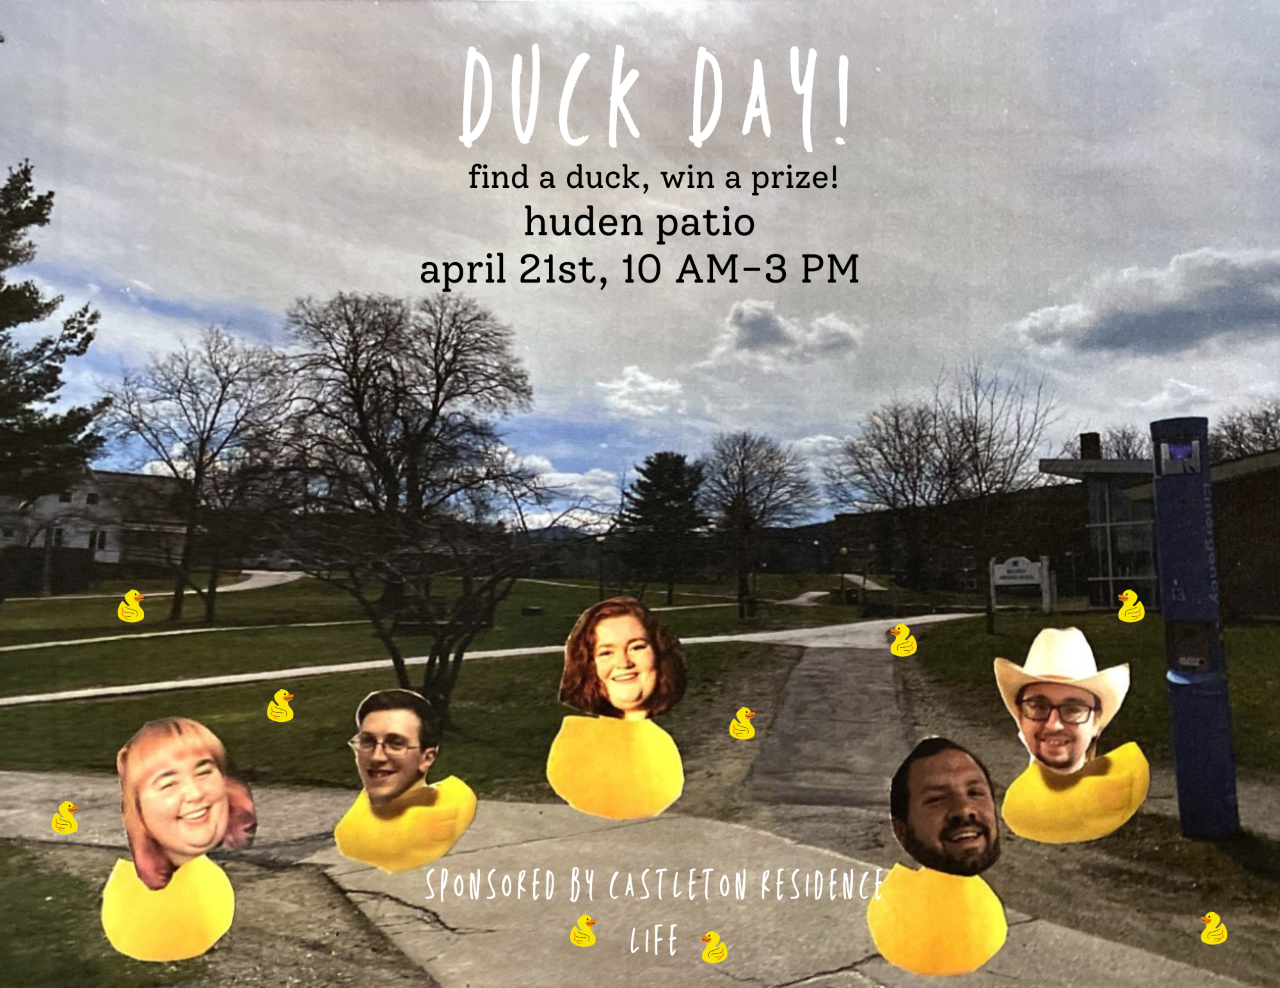 Come to the Huden Patio for Duck Day! (April 21)